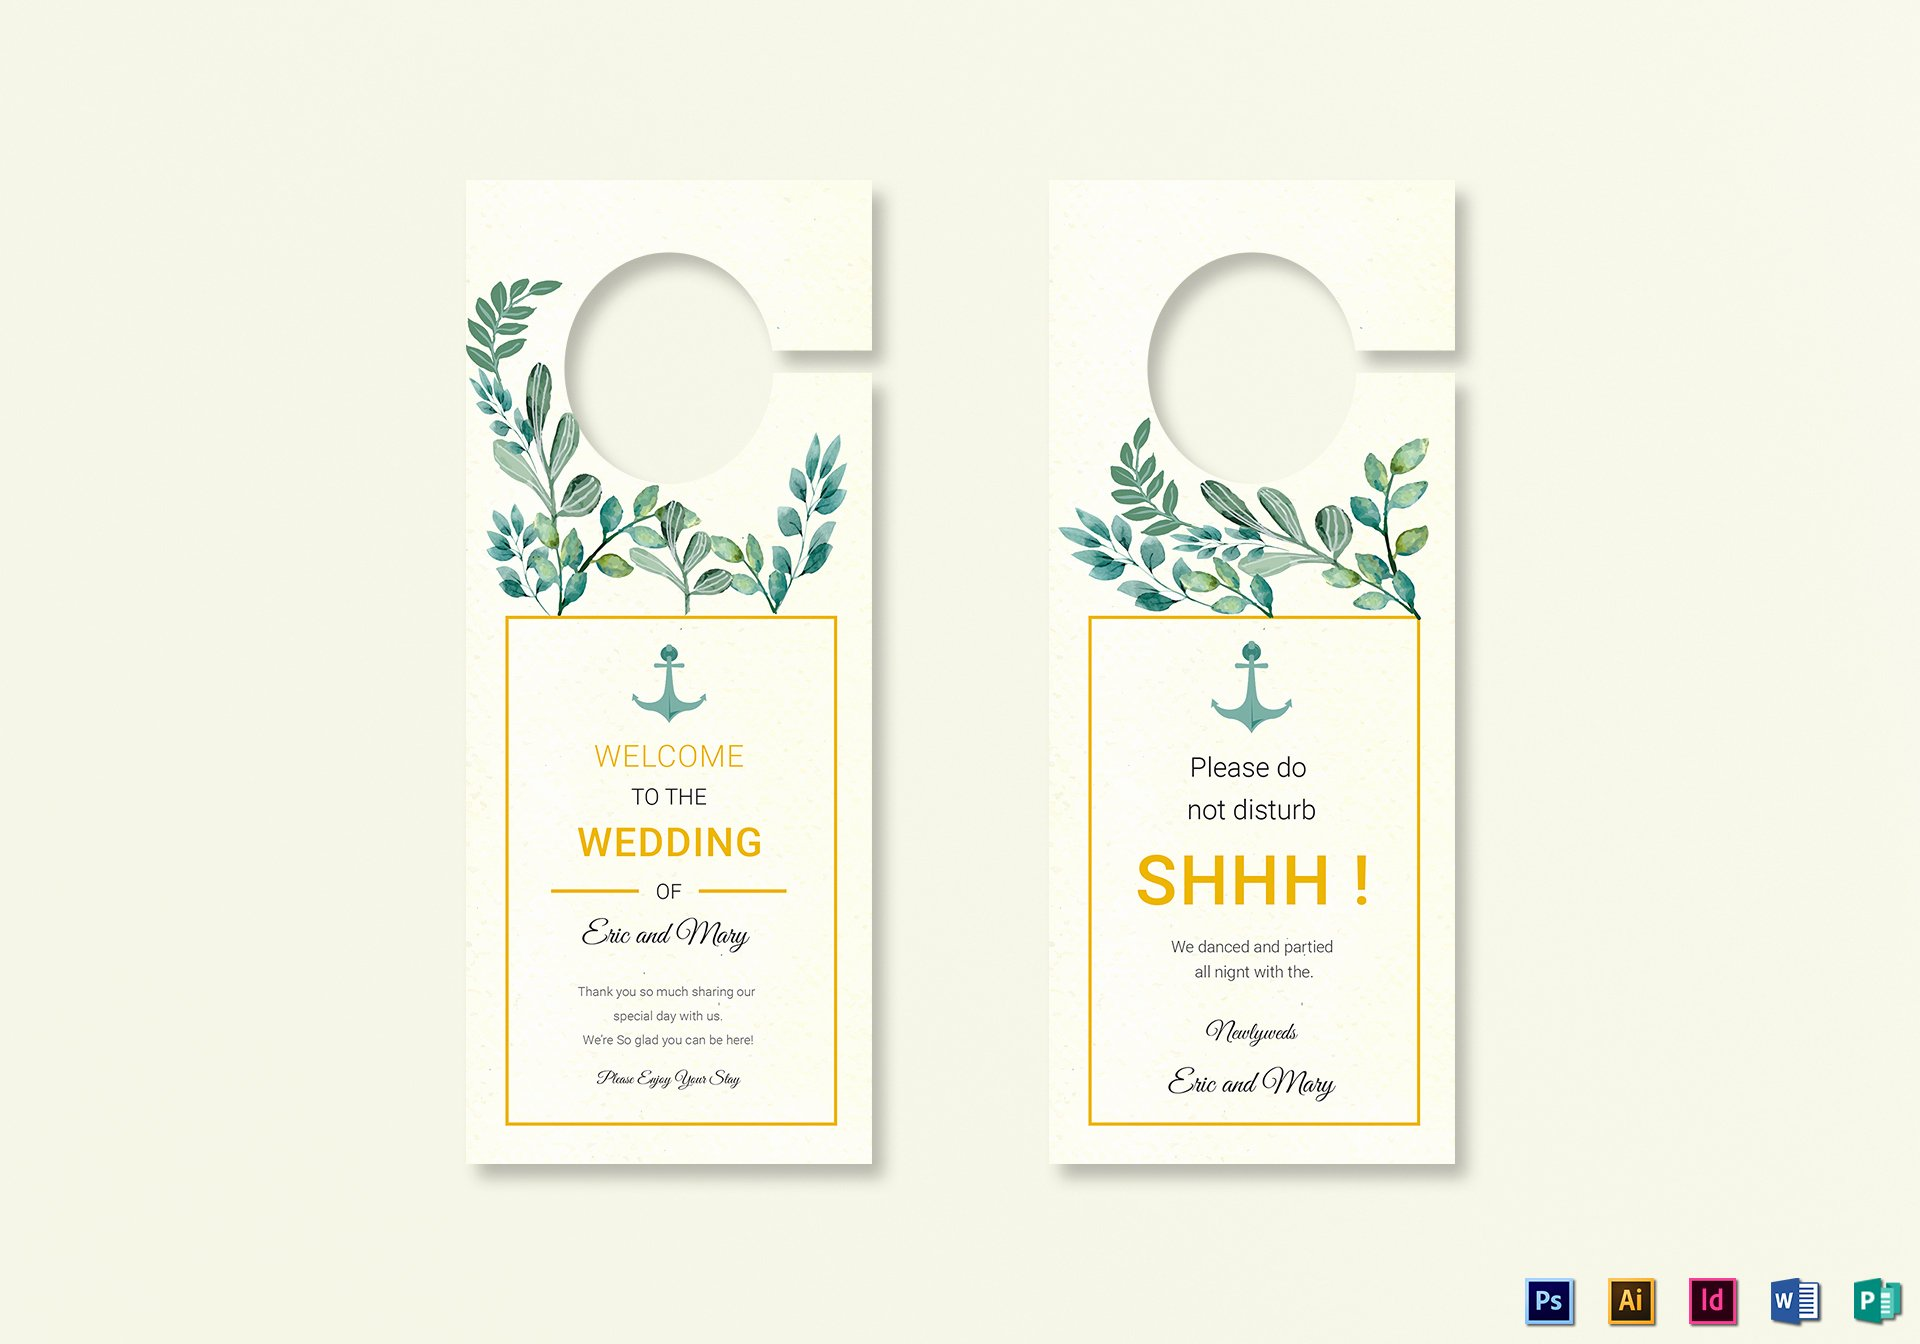 Door Hanger Template Publisher Inspirational Nautical Wedding Door Hanger Template In Psd Word Publisher Illustrator Indesign